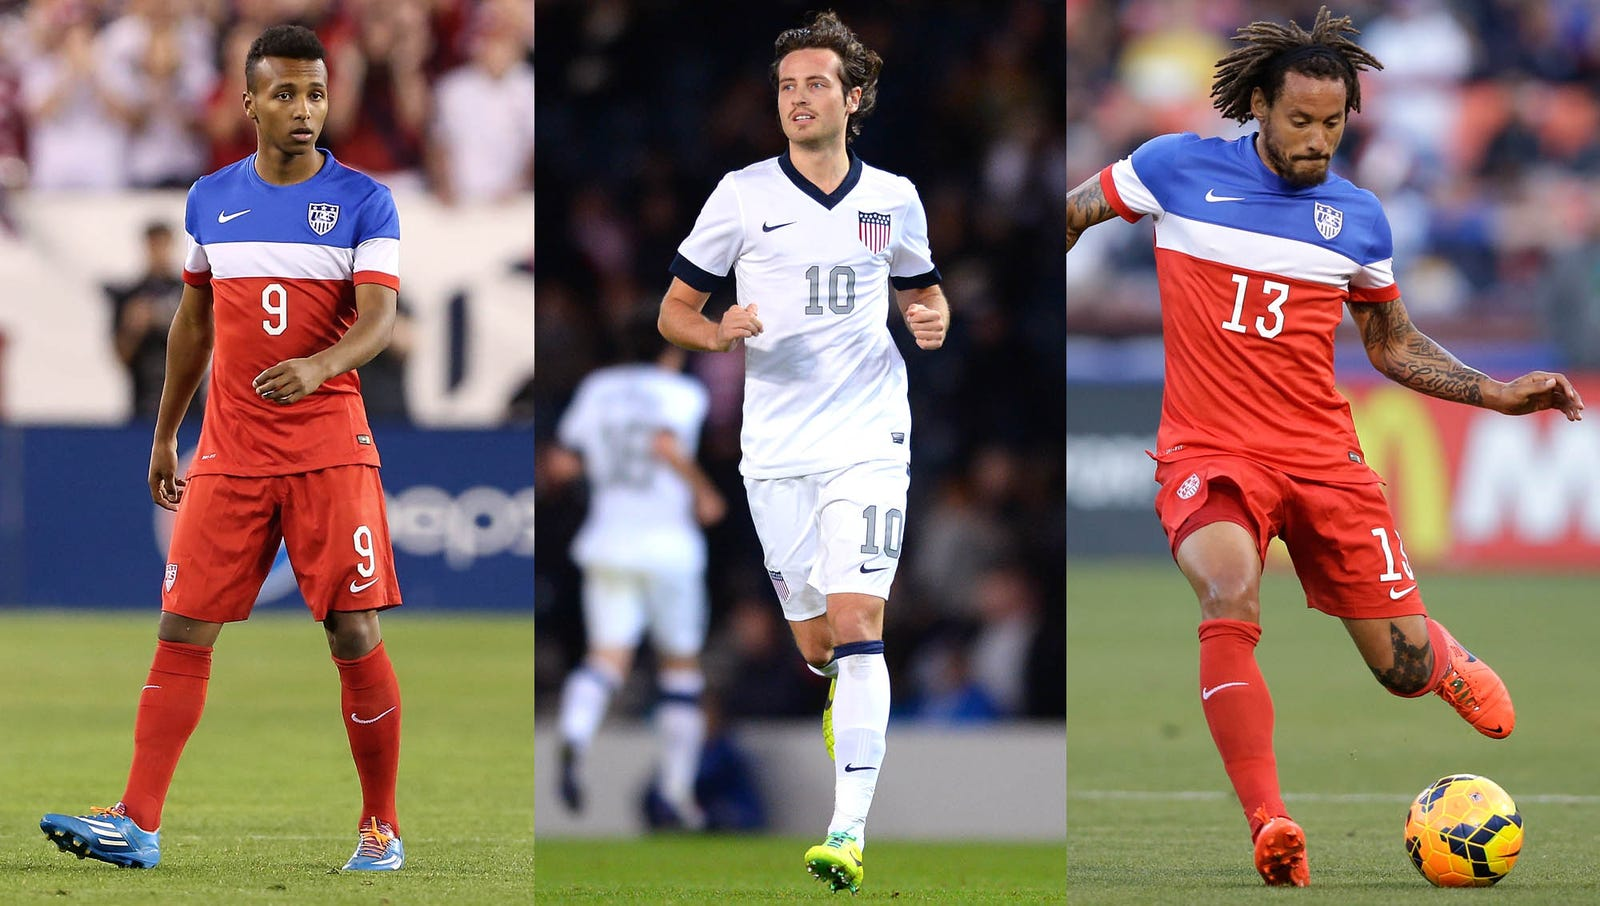 World Cup Inspires Whole New Generation Of Foreign Players To Someday Play For U.S.